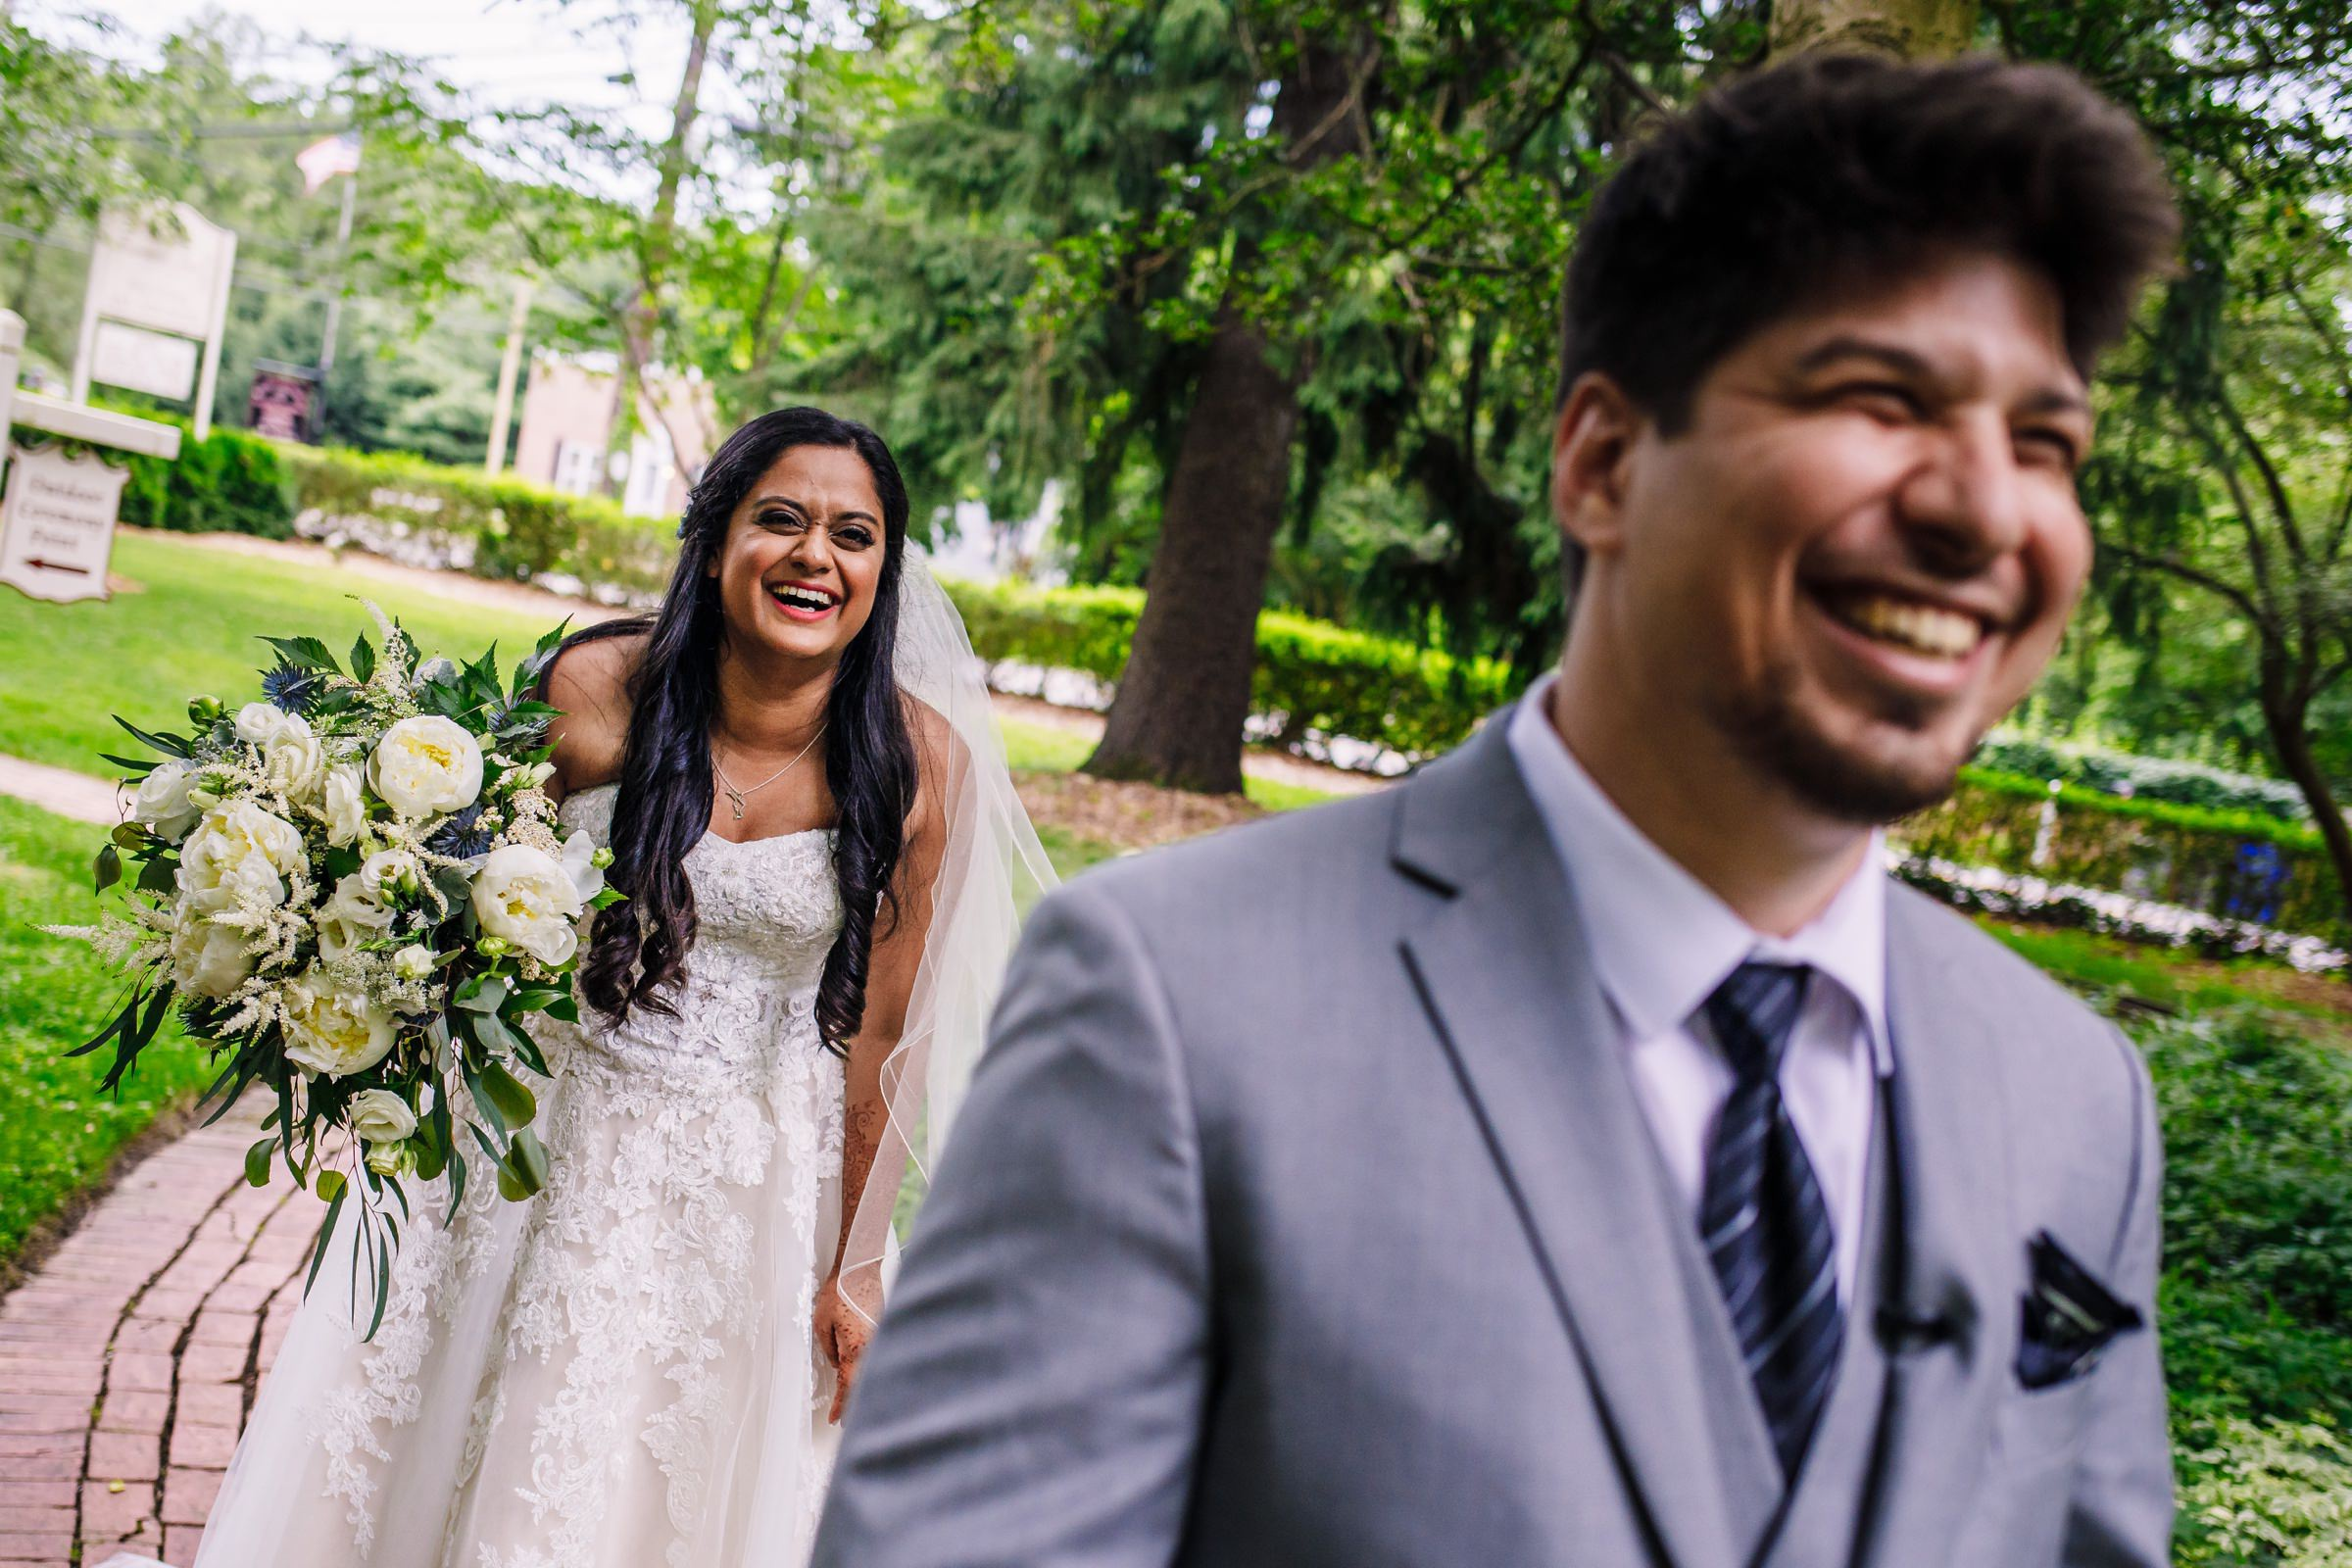 Laughing groom and excited bride during first look - photo by Photography by Brea